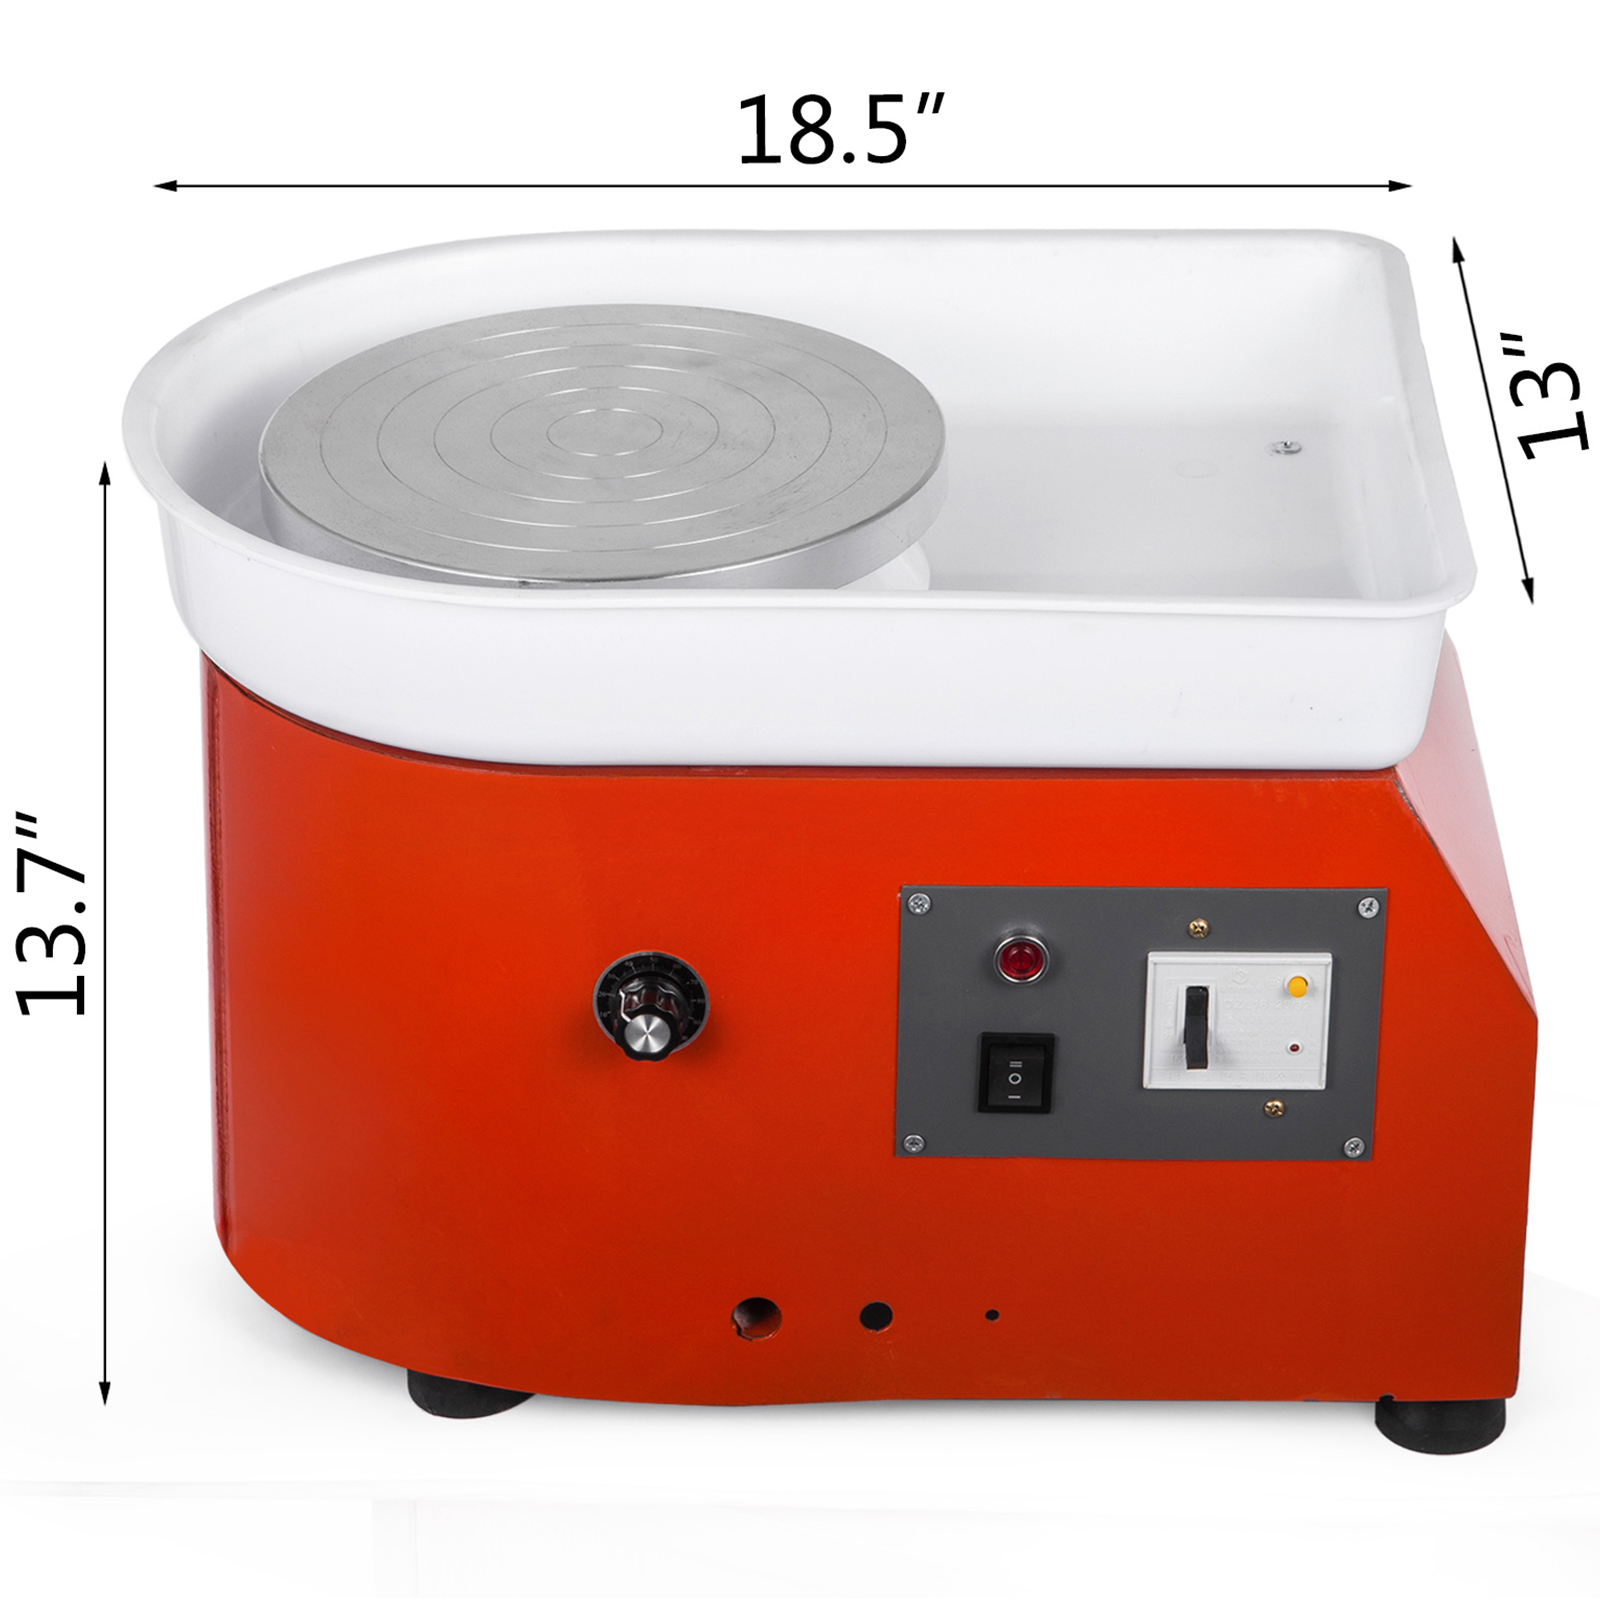 FORAVER Electric Pottery Wheel Ceramic Machine 25cm with Shaping Tool Kit Ceramic Wheel Machine Pottery DIY Kit Foot Pedal